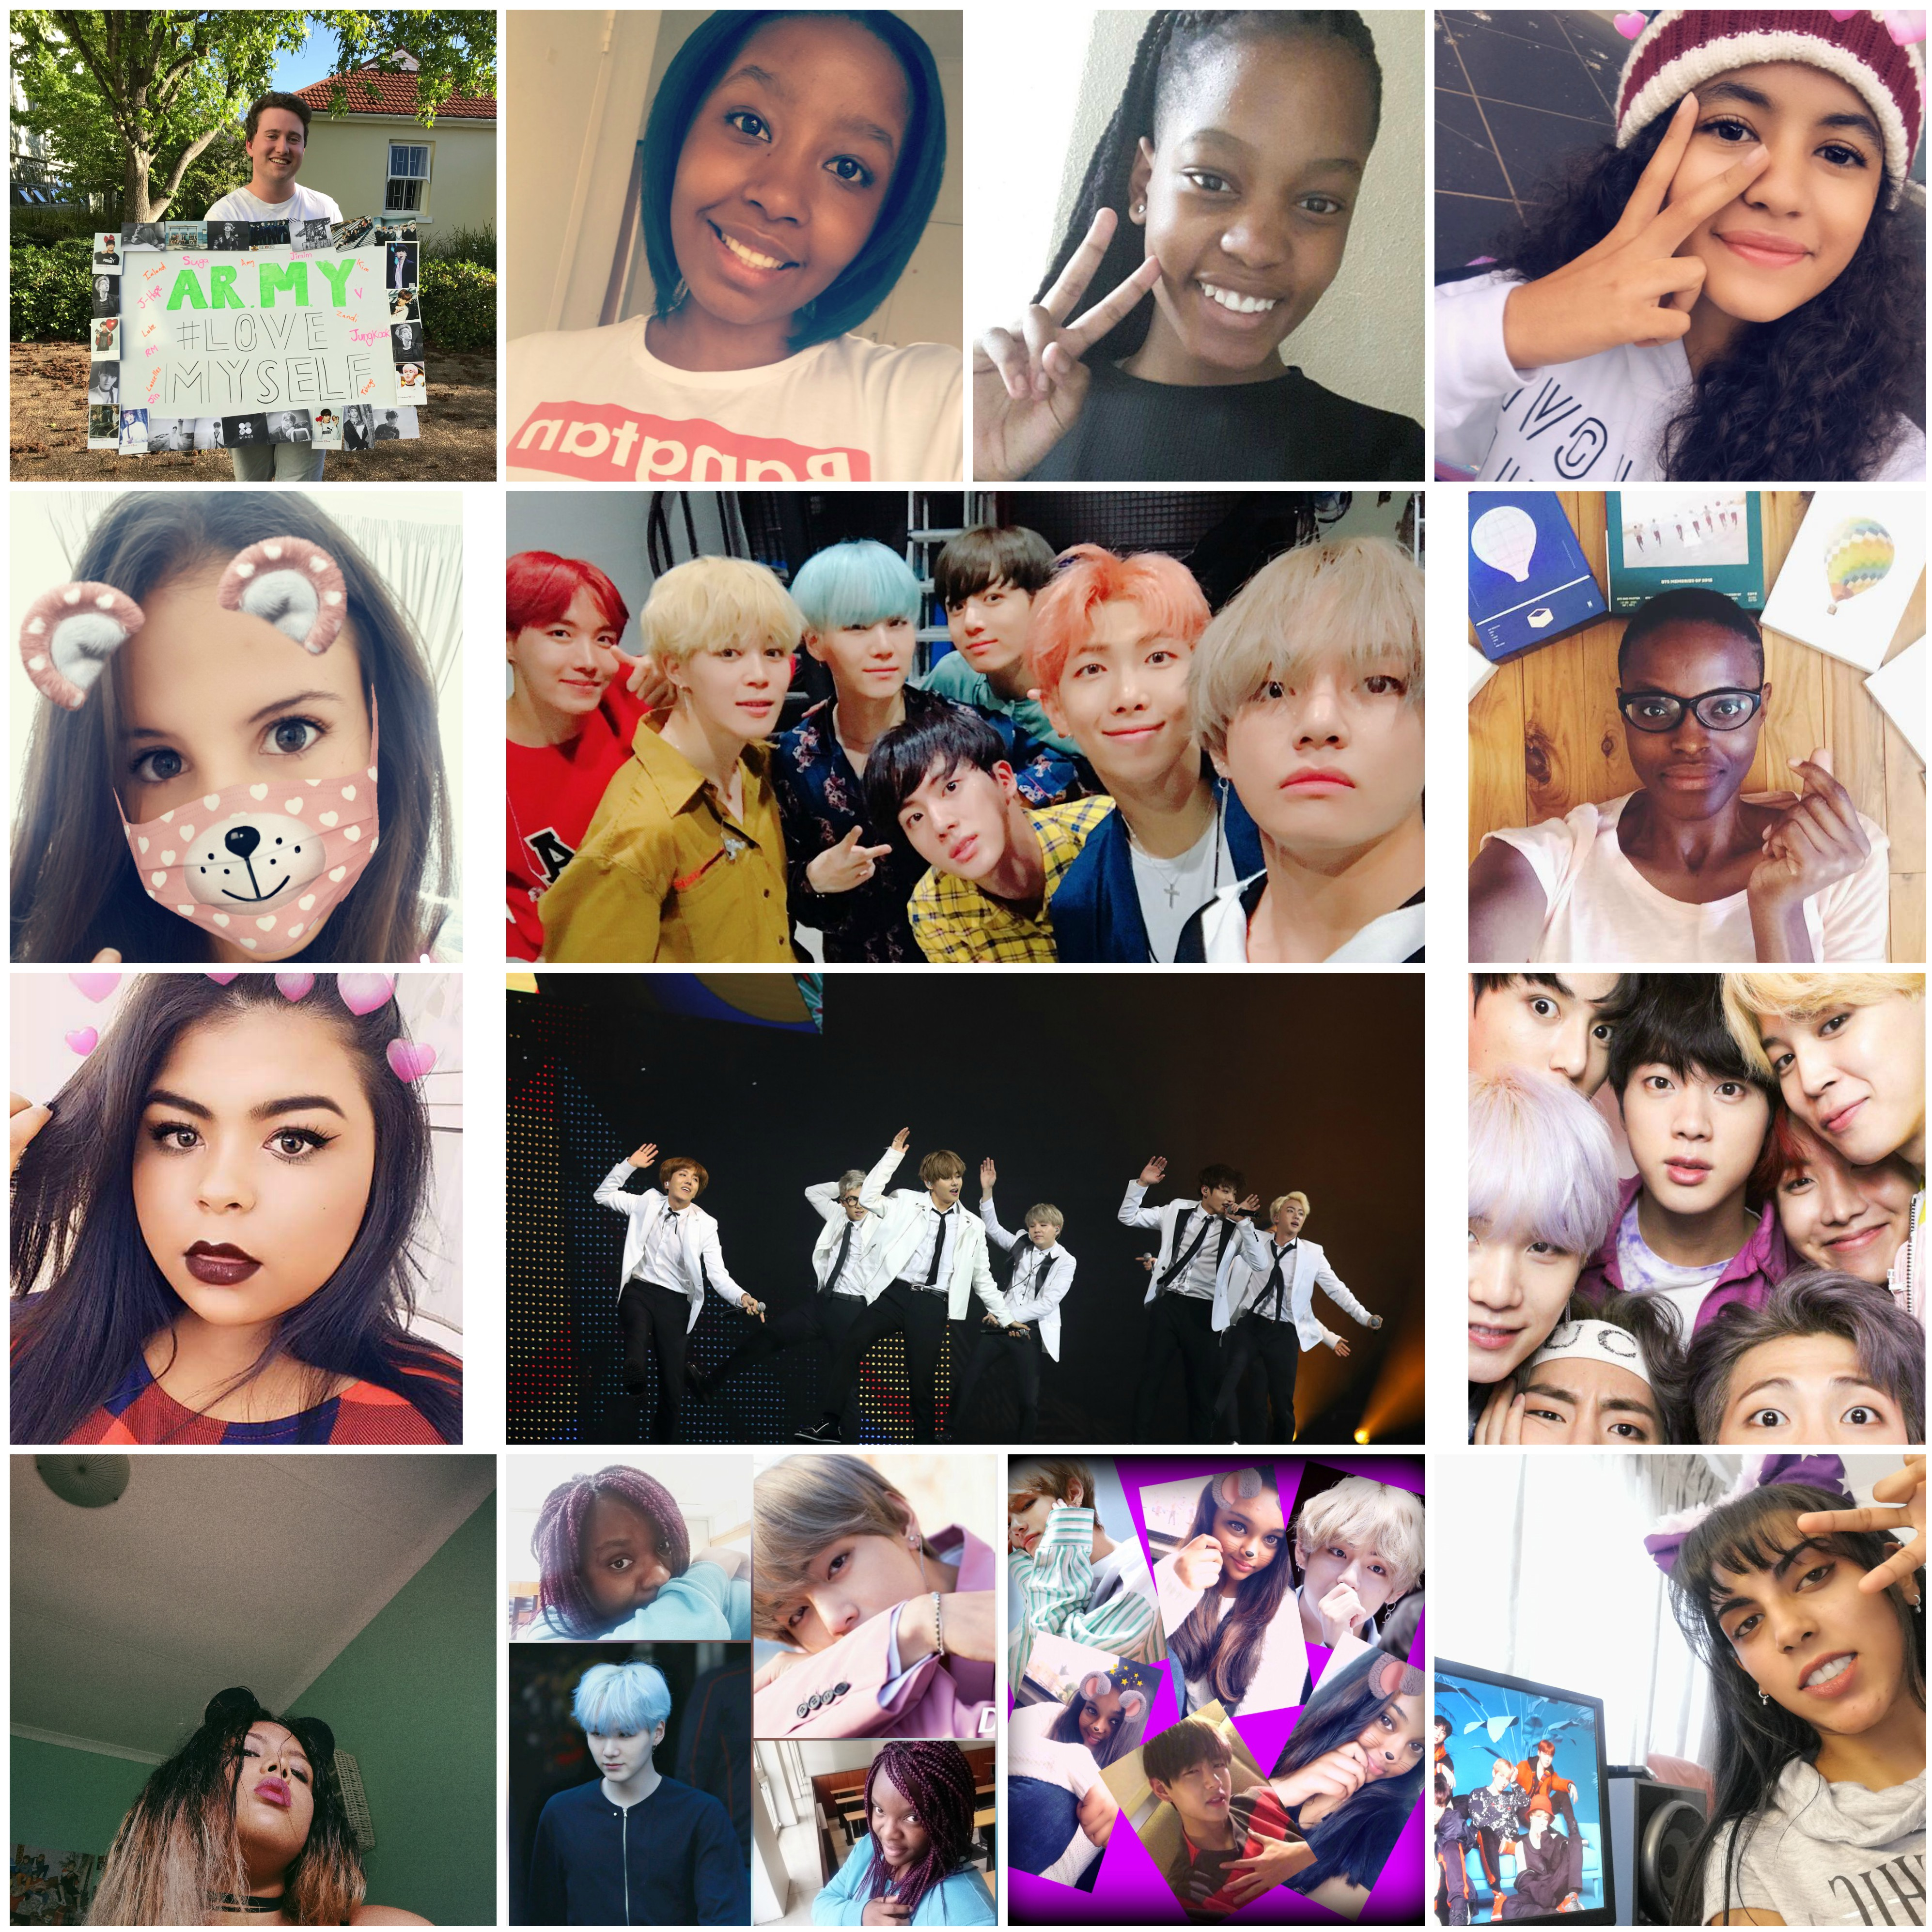 Here's Why BTS Has Such A Strong ARMY In South Africa - The